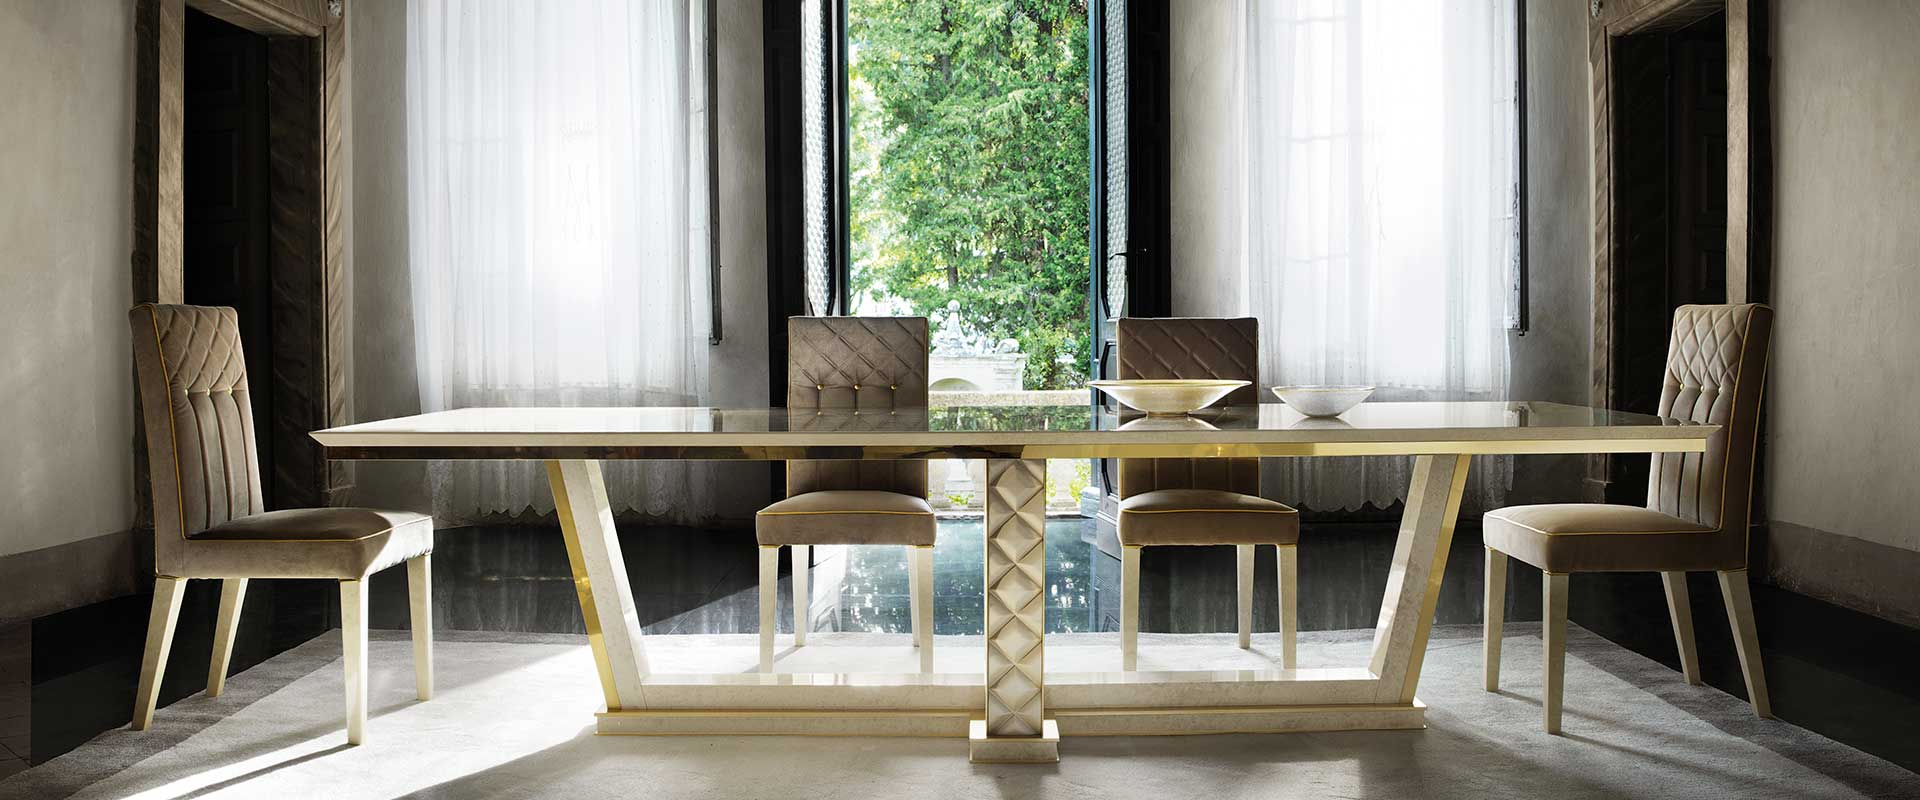 adora sipario dining table with chairs